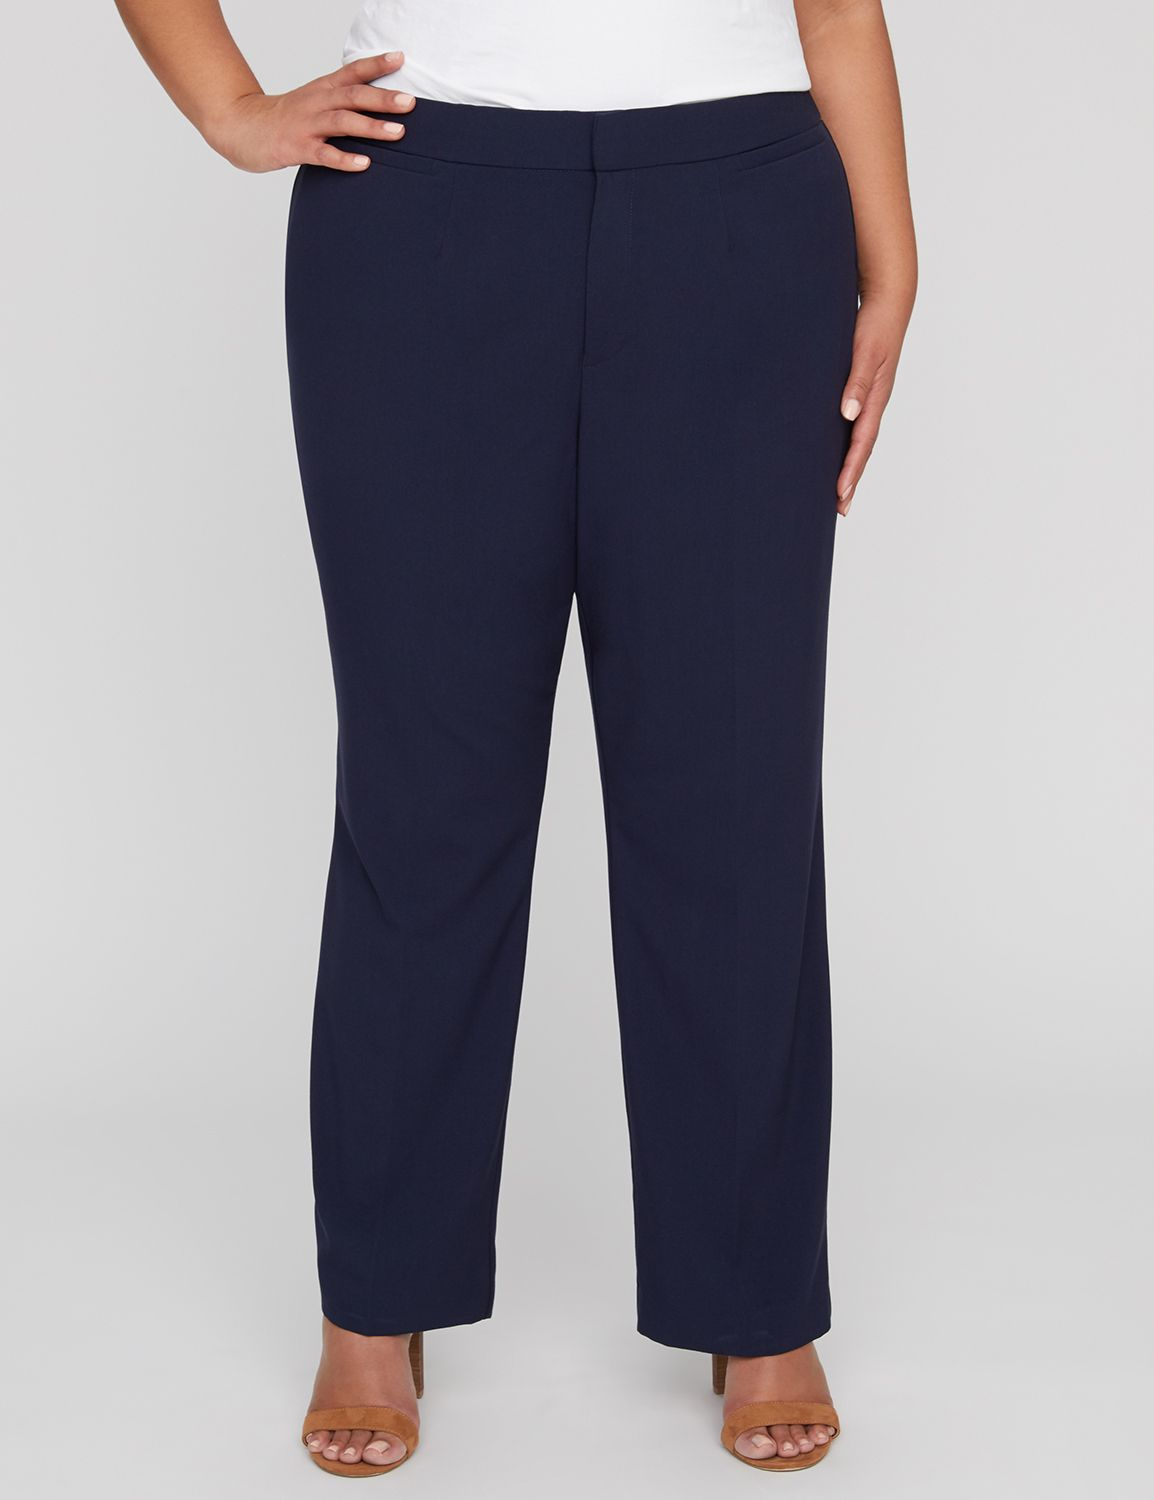 Right Fit Pant (Curvy) Right Fit Pant (Curvy) MP-300043643